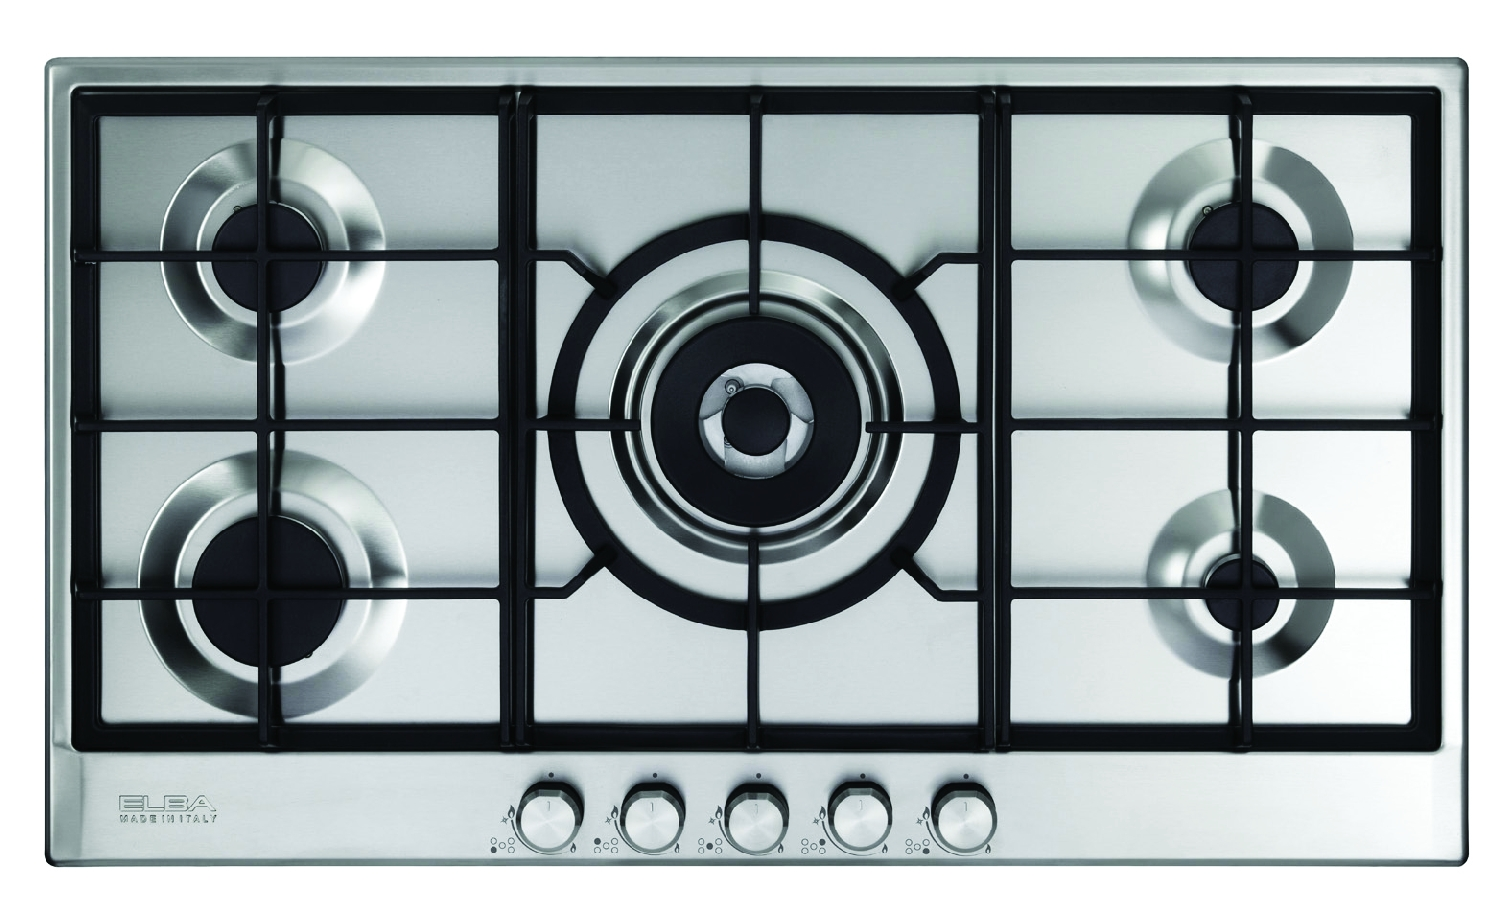 elba-new-design-90cm-built-in-cook-top-model-elio-95-545